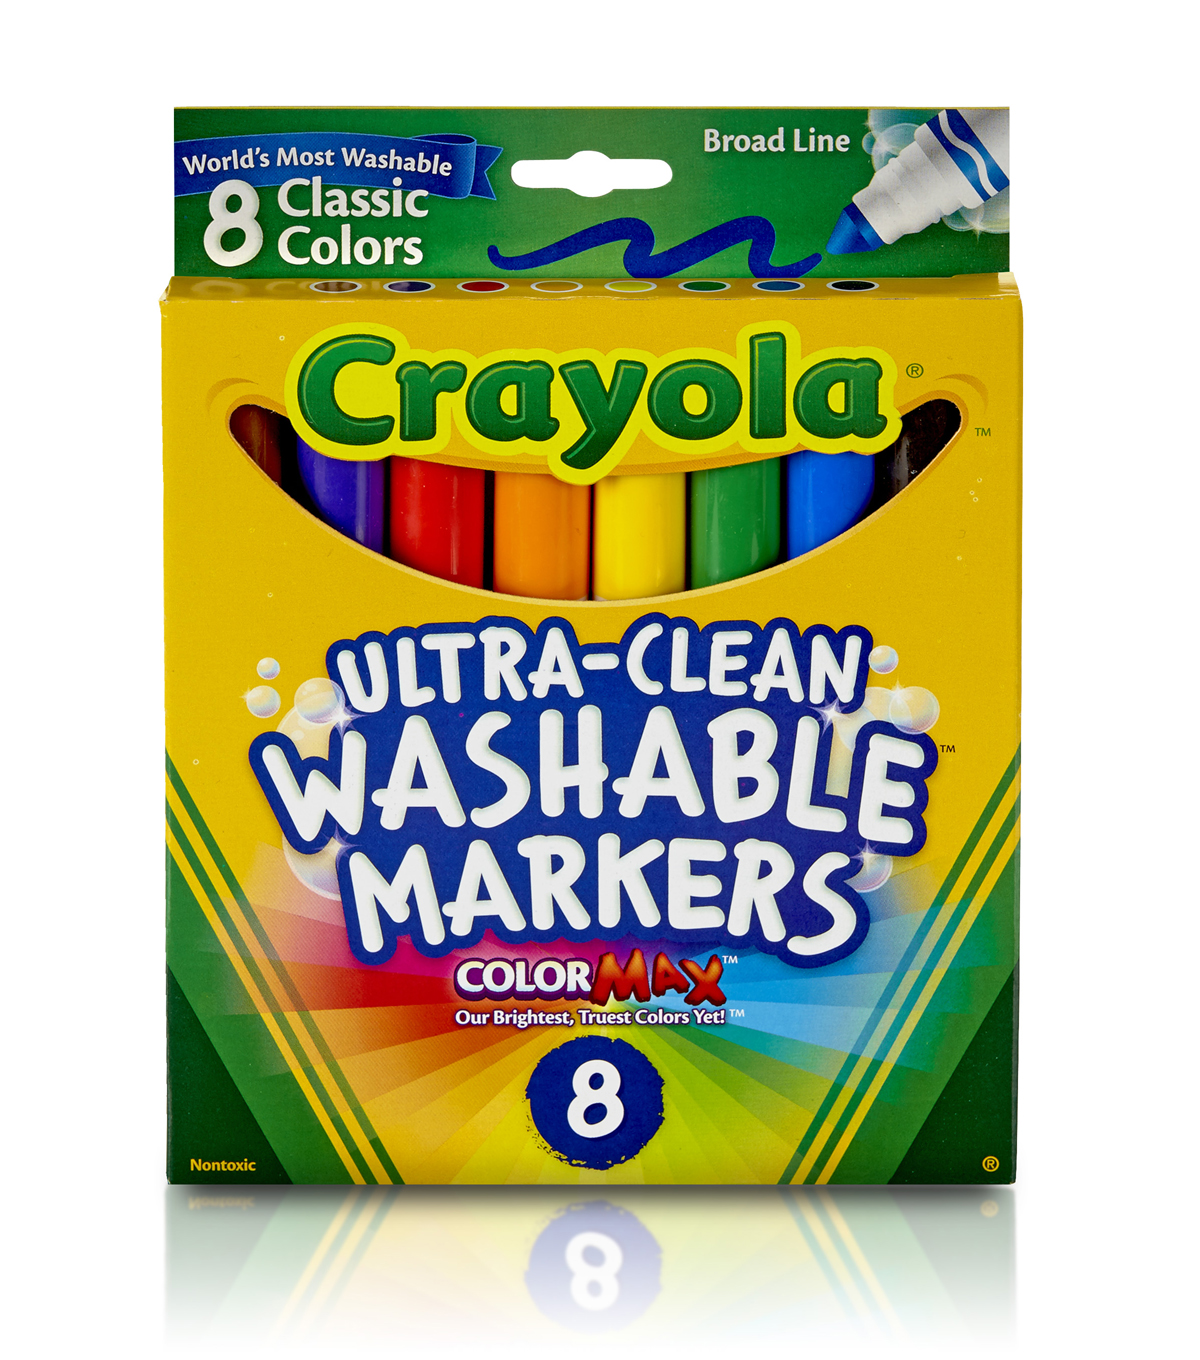 Crayola Broad Line Washable Markers-8PK/Classic Colors